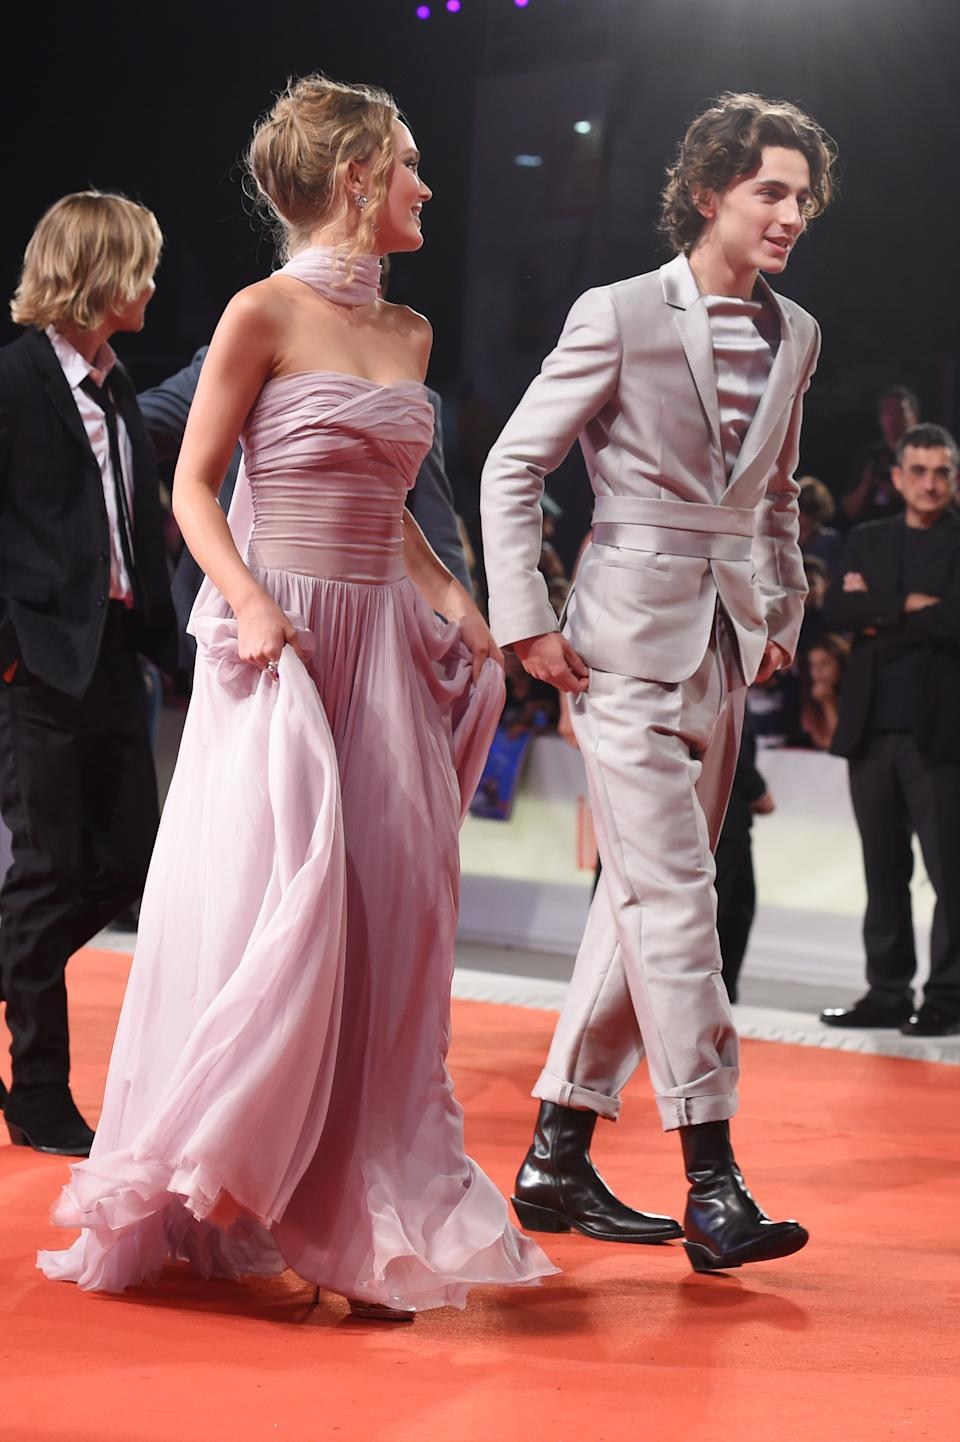 """VENICE, ITALY - SEPTEMBER 02: Lily-Rose Depp and Timothee Chalamet attend """"The King"""" red carpet during the 76th Venice Film Festival at Sala Grande on September 02, 2019 in Venice, Italy. (Photo by Stefania D'Alessandro/WireImage,)"""